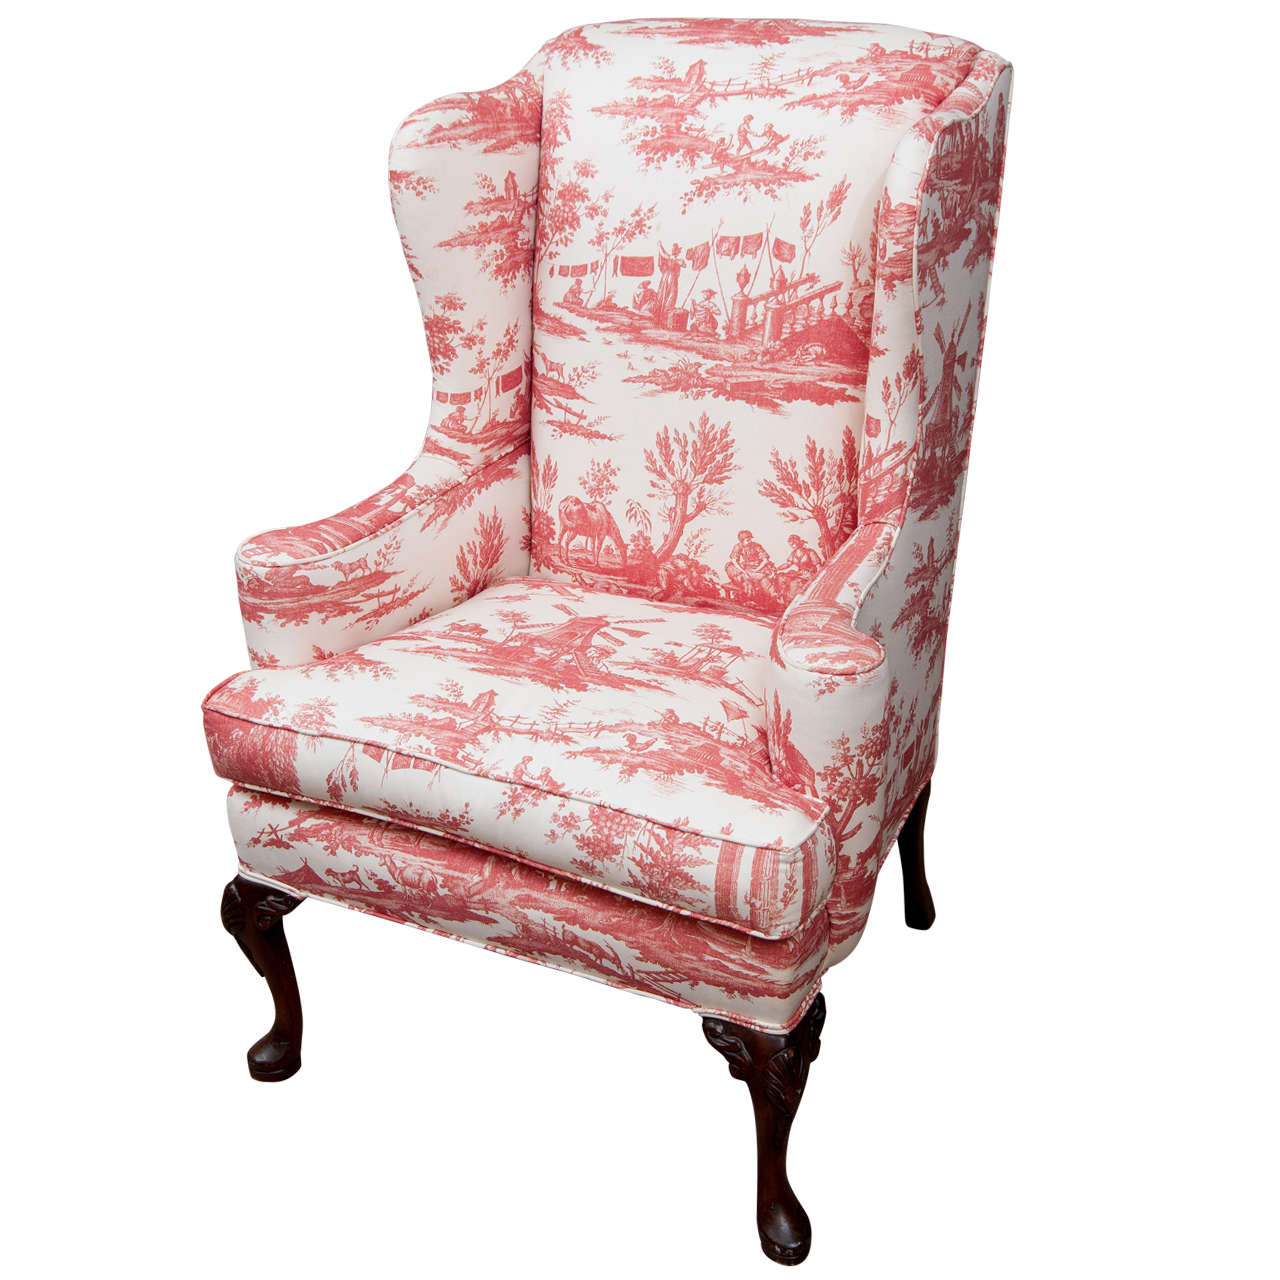 Queen Chairs Queen Anne Chair And The Antique Sense Of It 3288